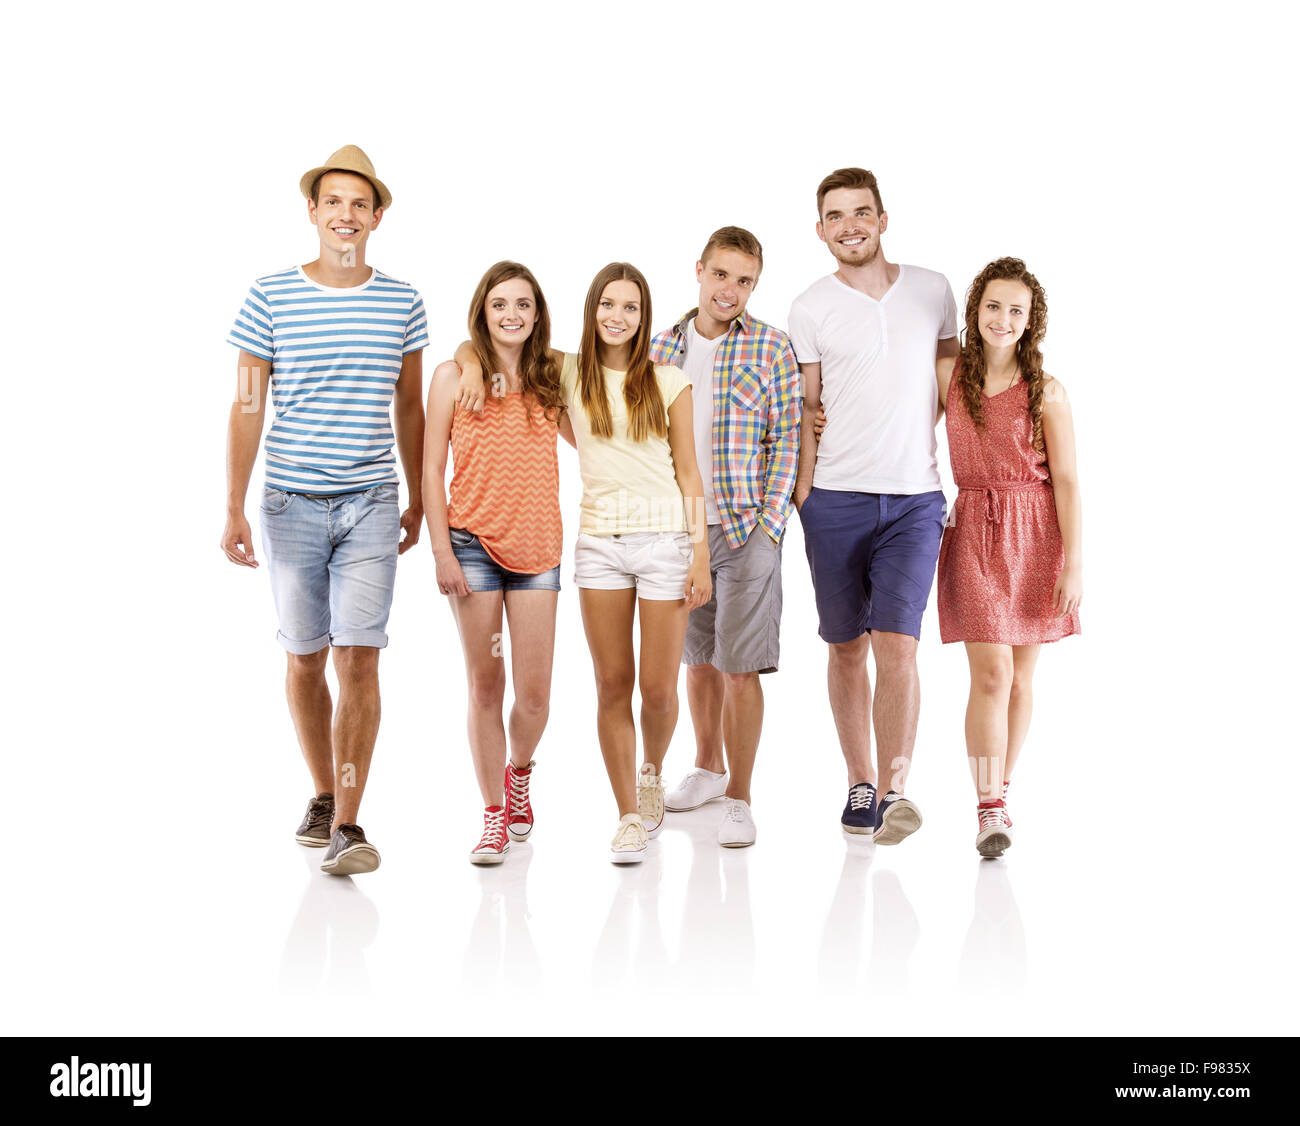 Group of happy young people walking, isolated on white background. Best friends - Stock Image